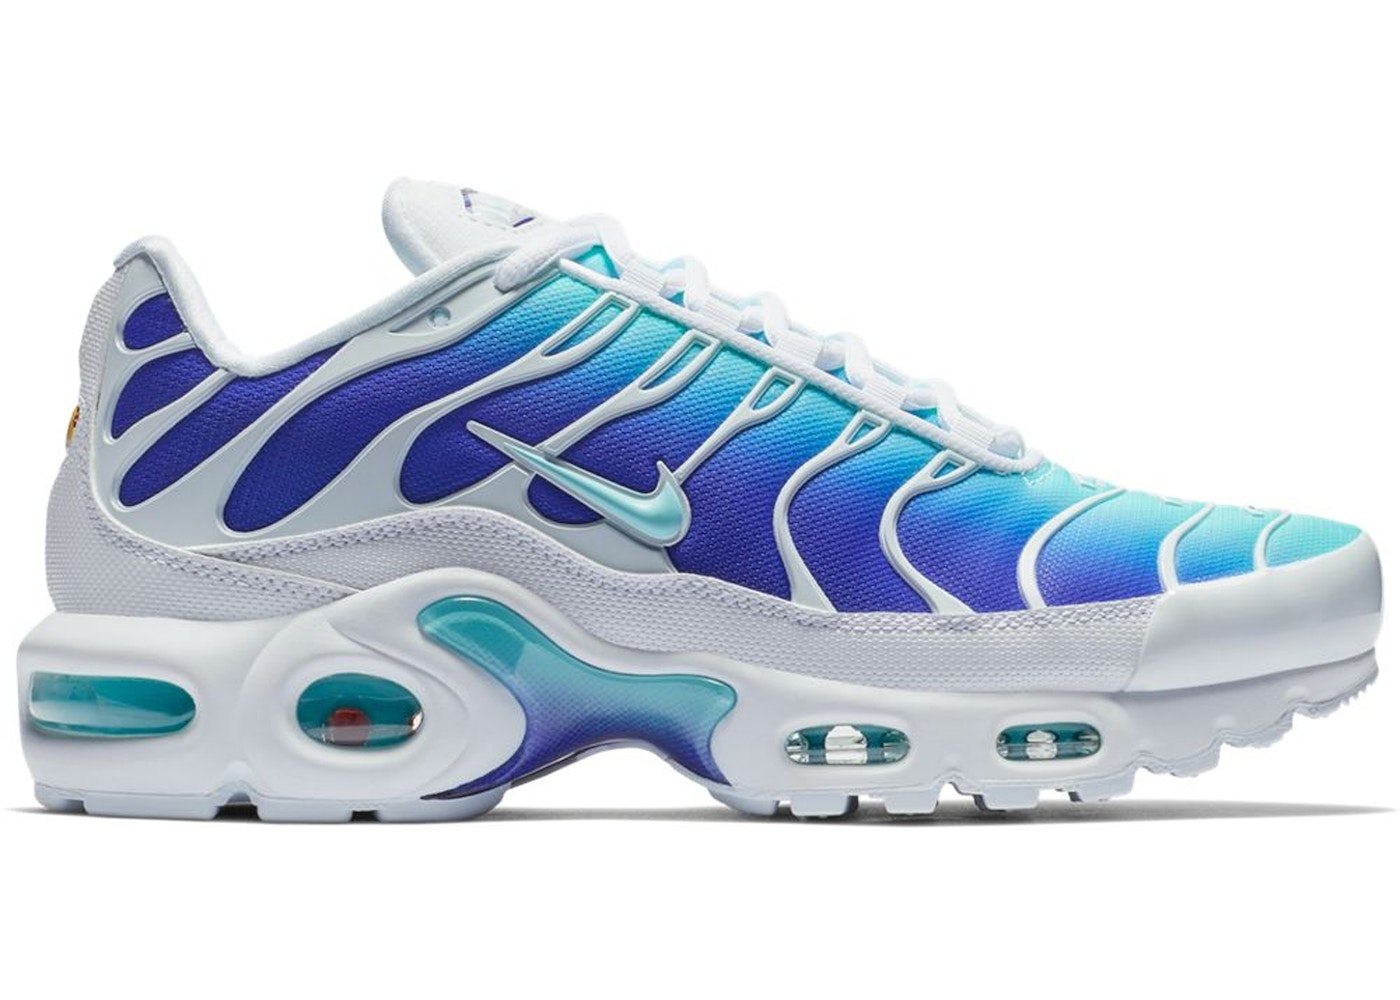 promo code 705ee ae150 Air Max Plus Bleached Aqua Fierce Purple (W)